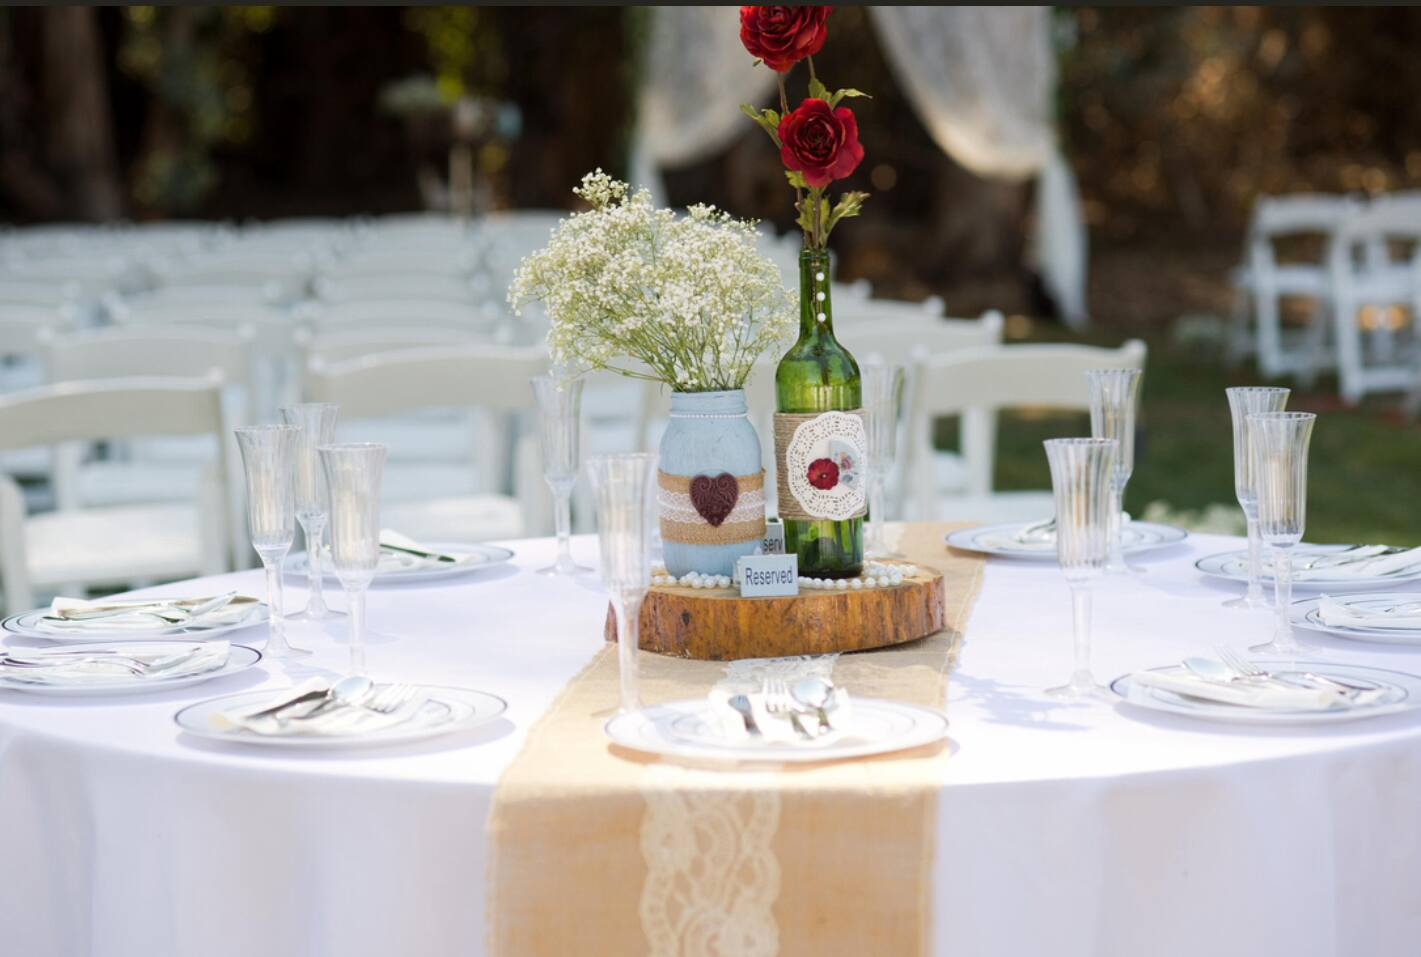 Handmade items adore and decorate each guest table.